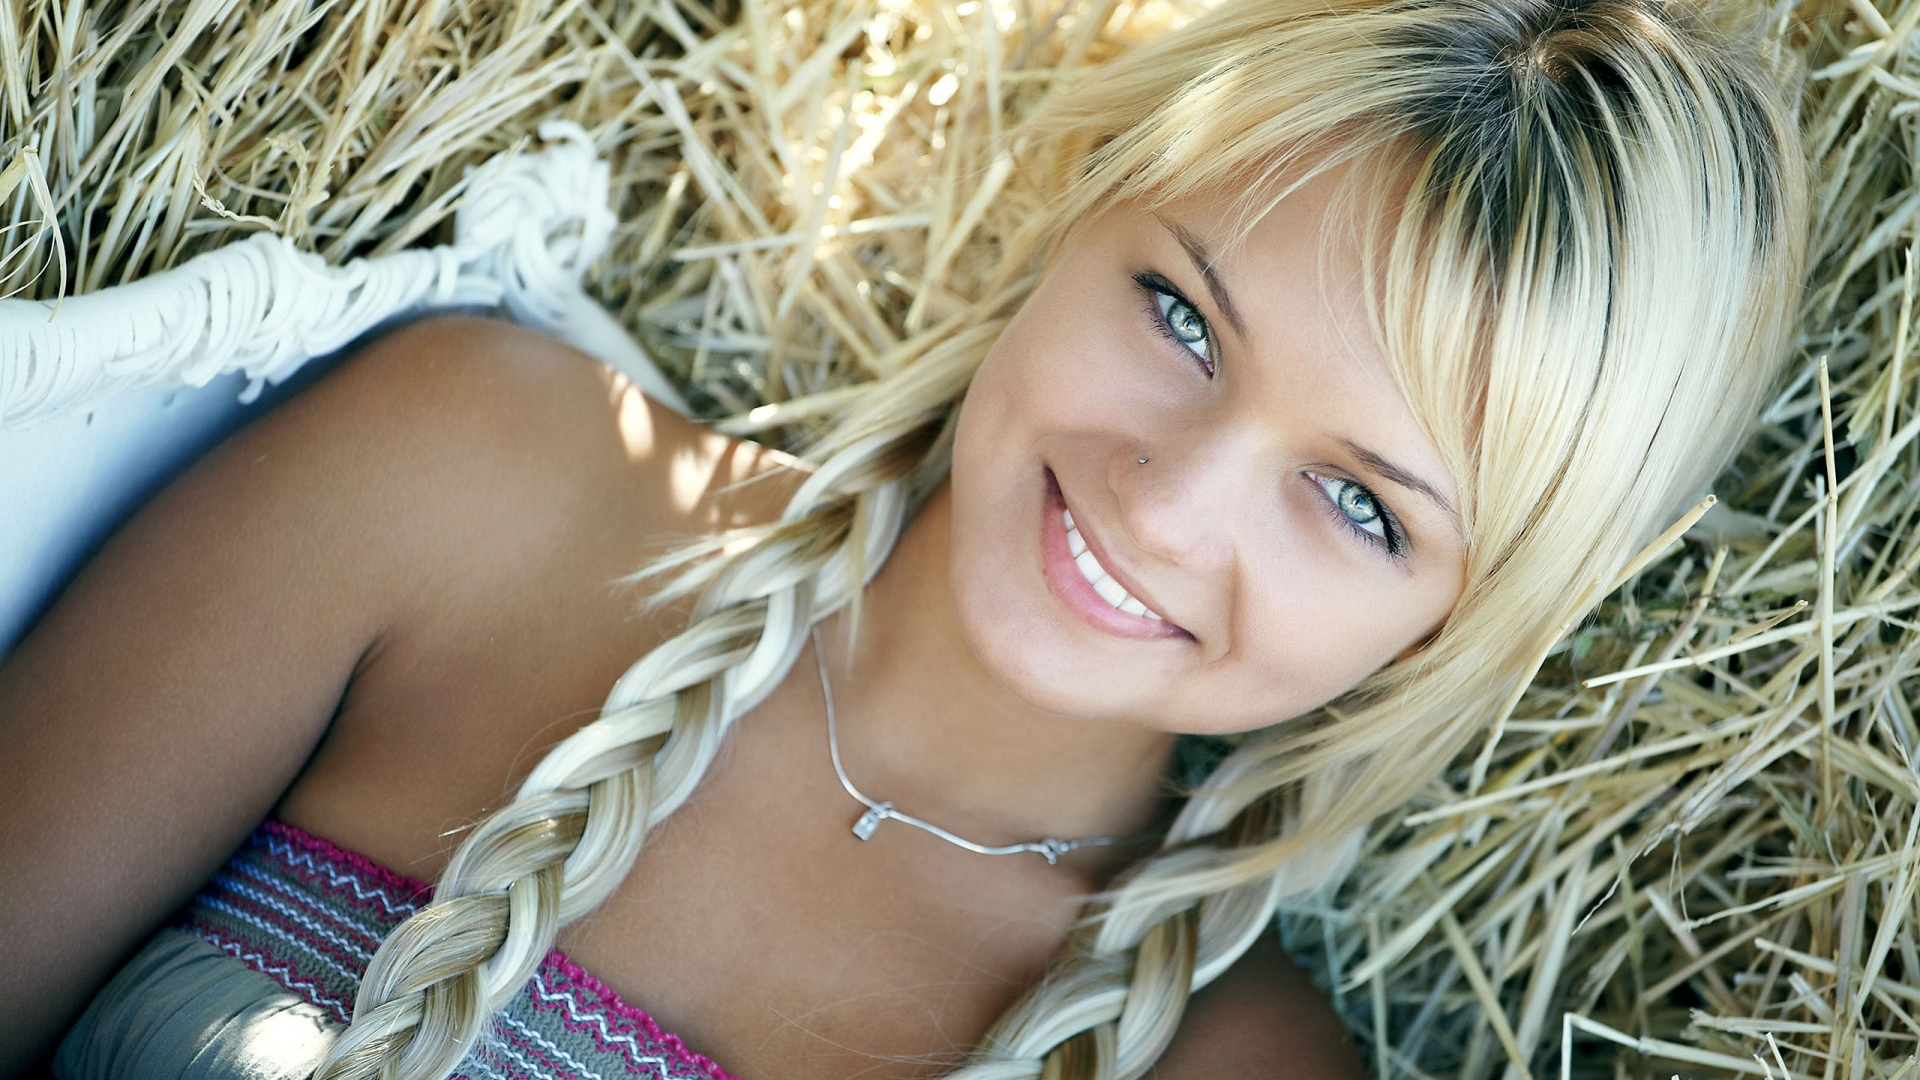 Blonde girl in pigtails, sara stokes nude video